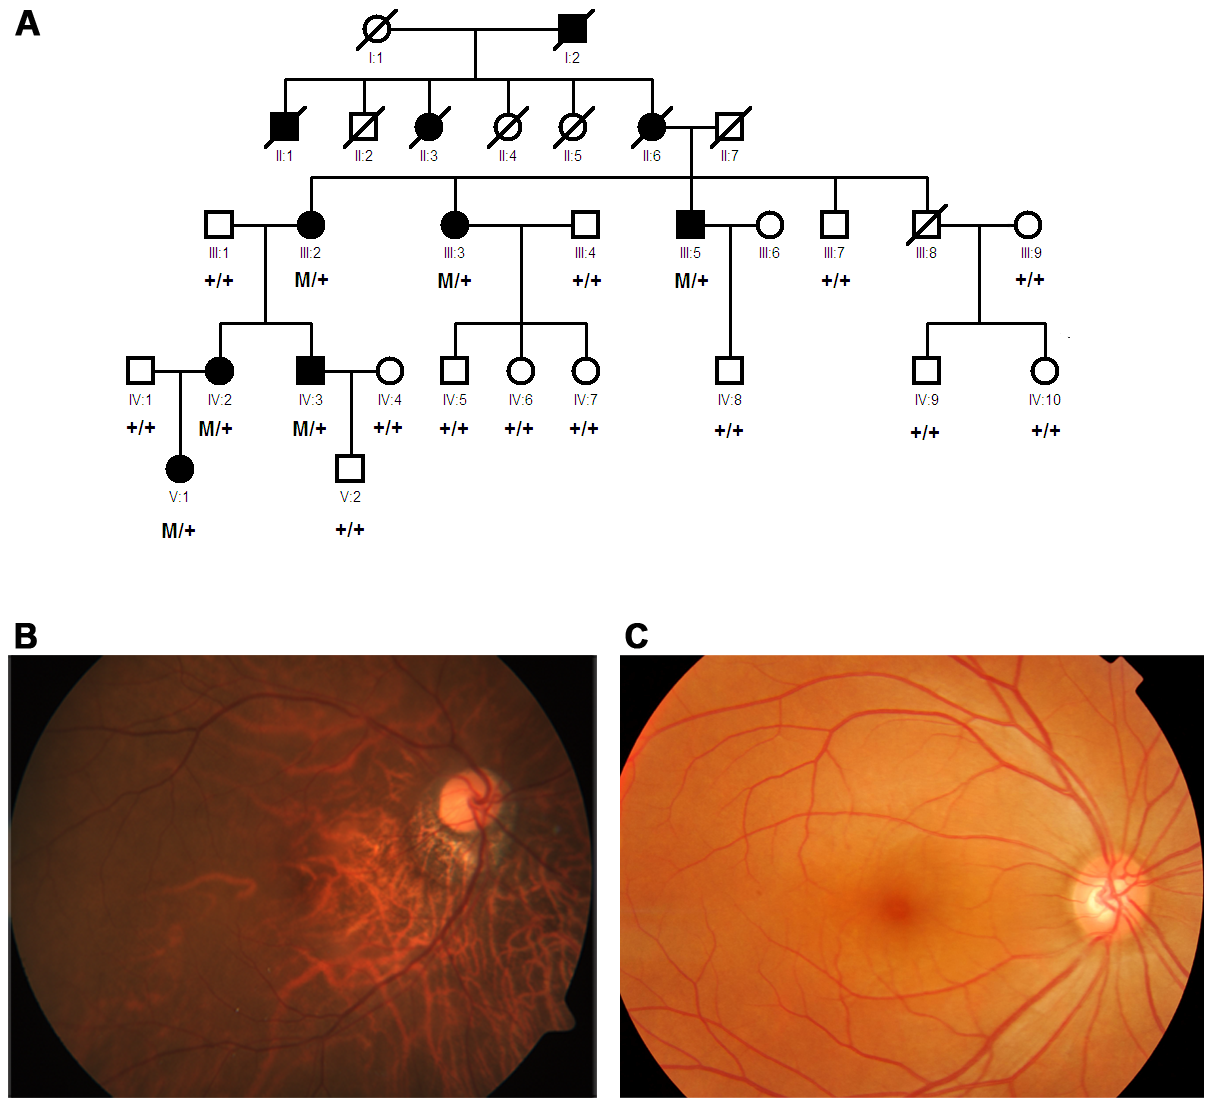 Pedigree and segregation of the mutation and fundus photograph of a patient from the family.